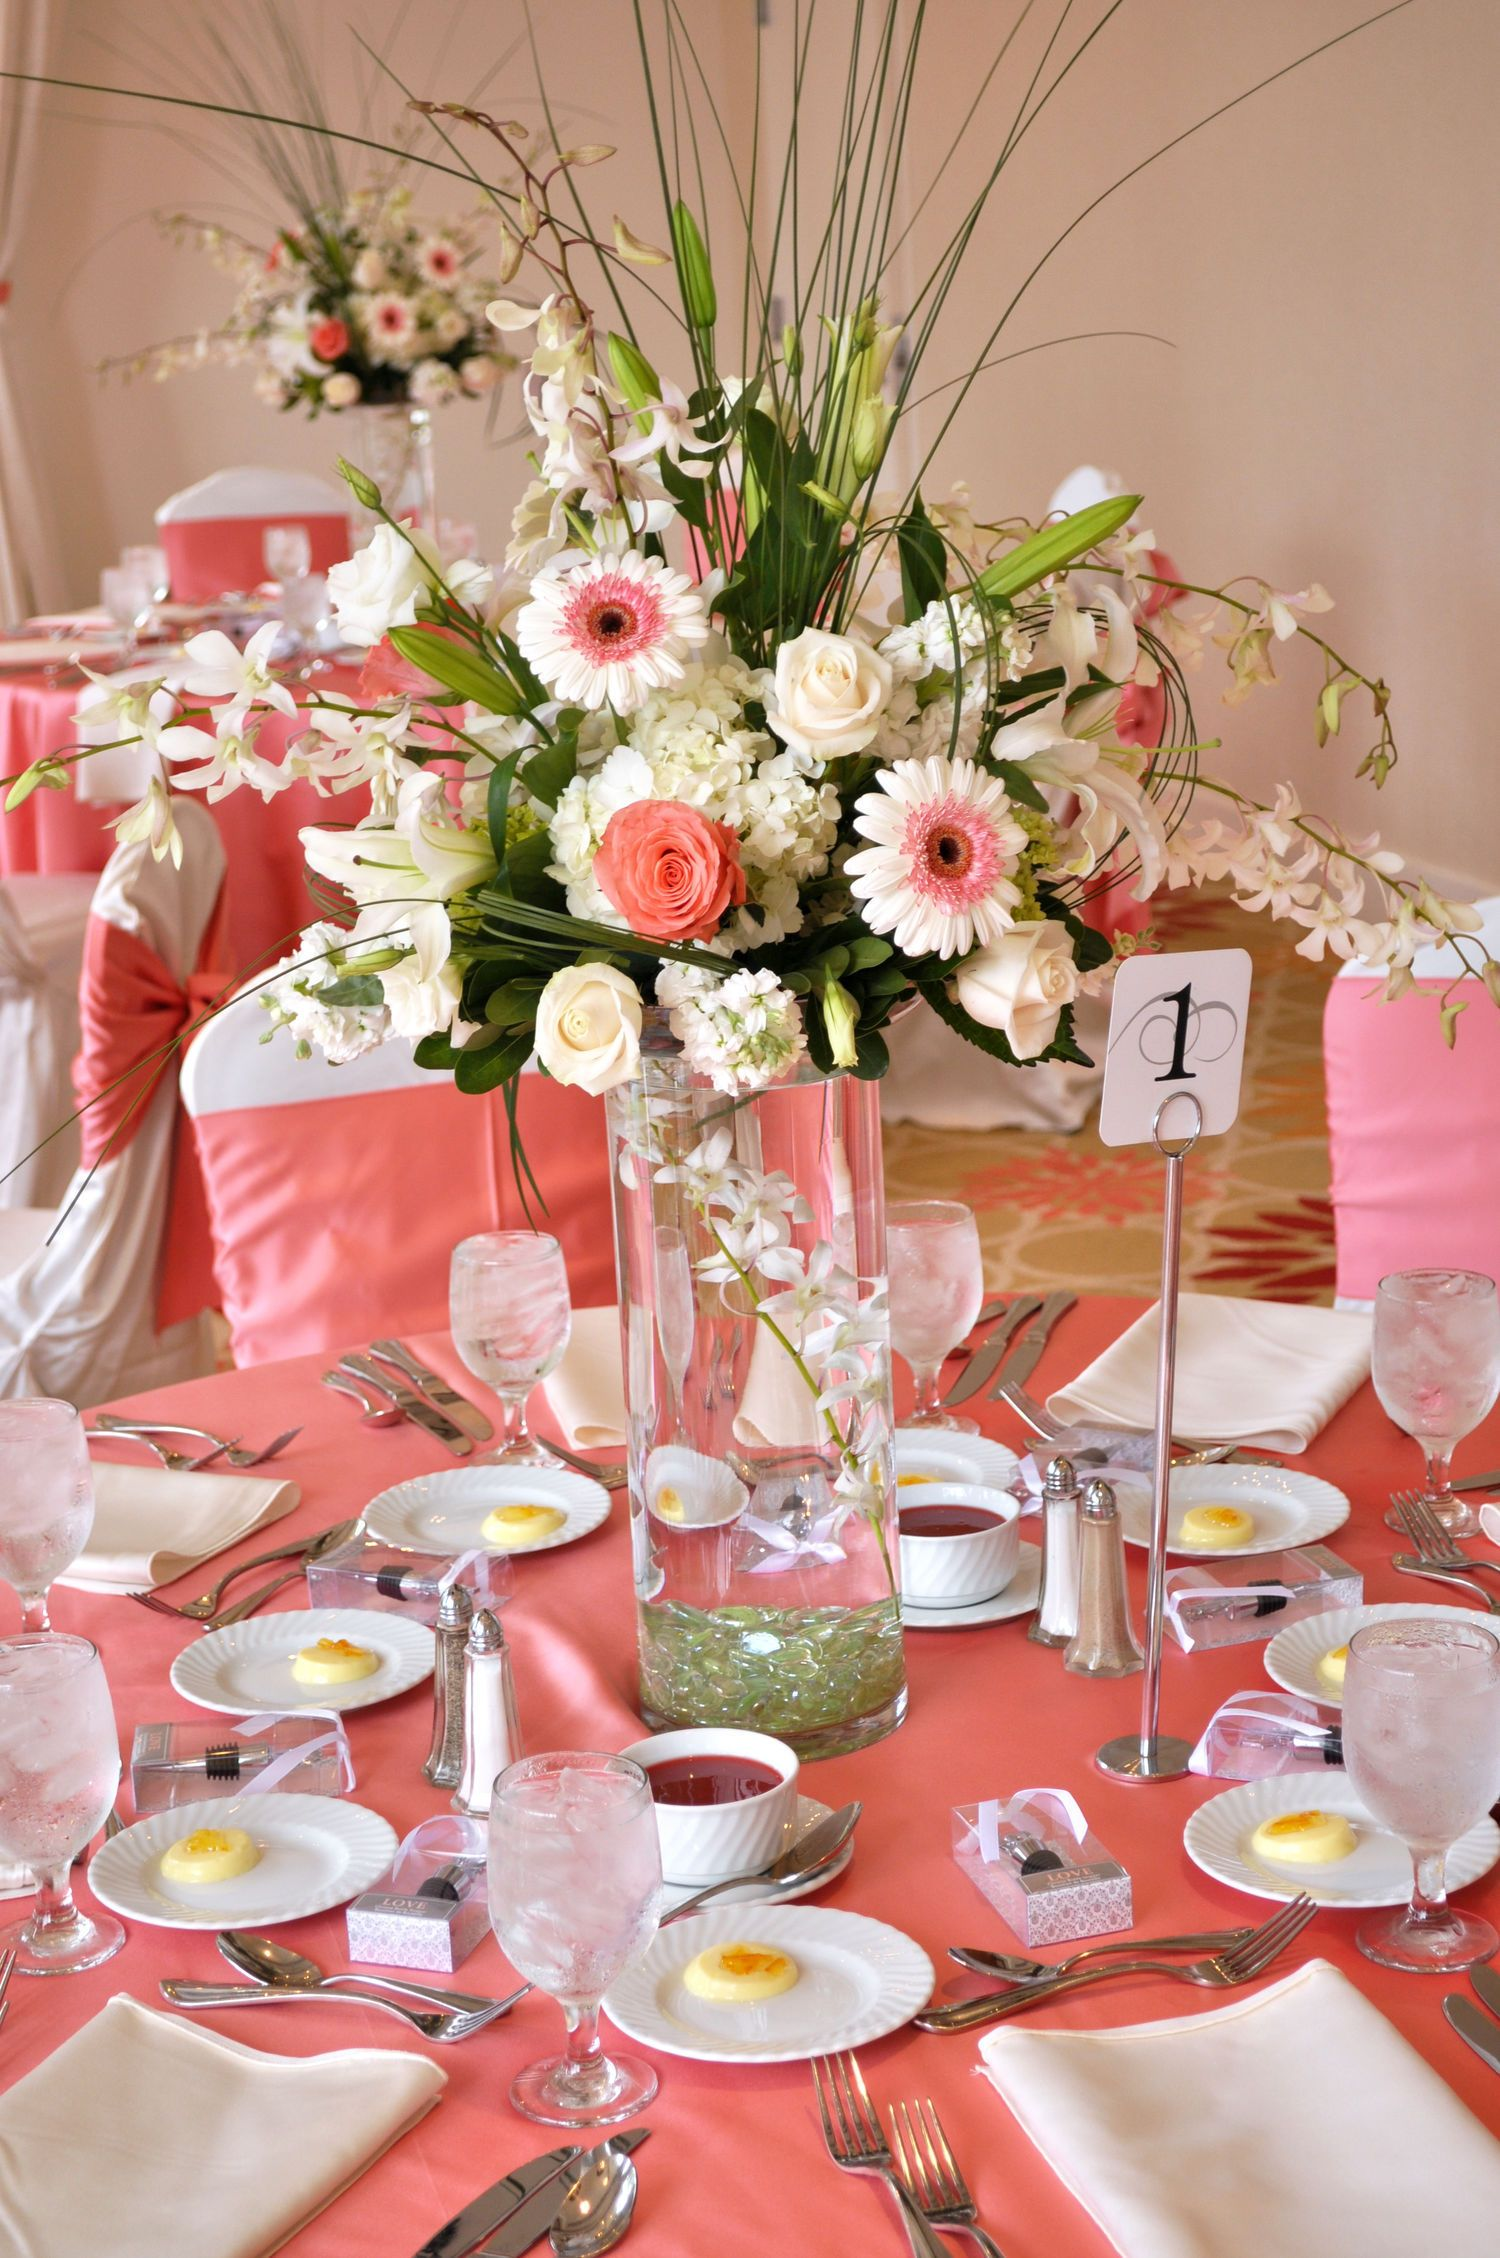 Epic coral colored decorations 43 on home furniture ideas with epic coral colored decorations 43 on home furniture ideas with coral colored decorations junglespirit Gallery